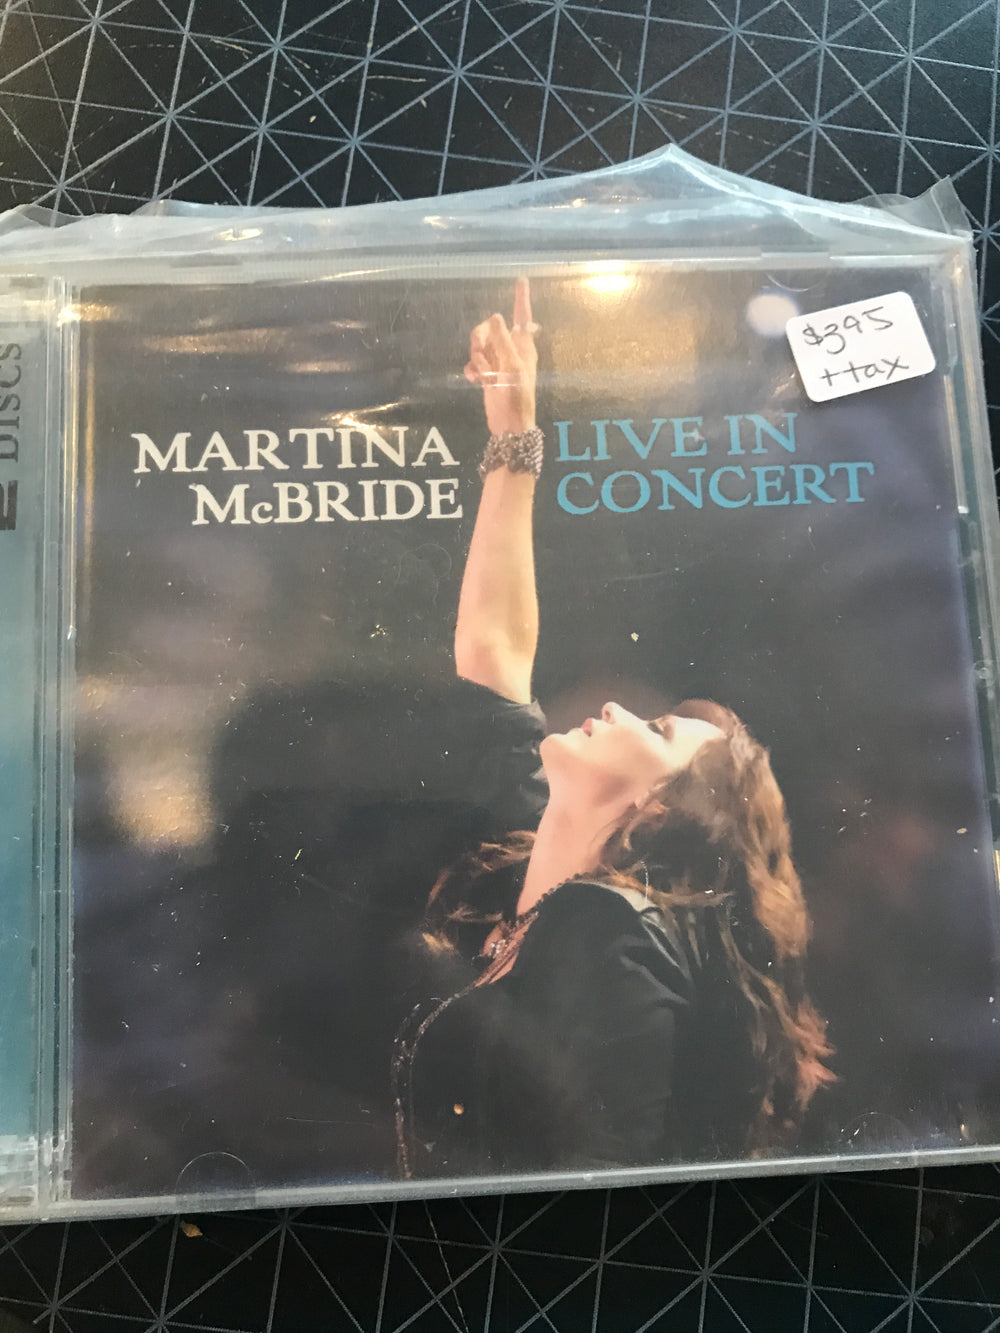 Martina McBride - Live In Concert - Used CD